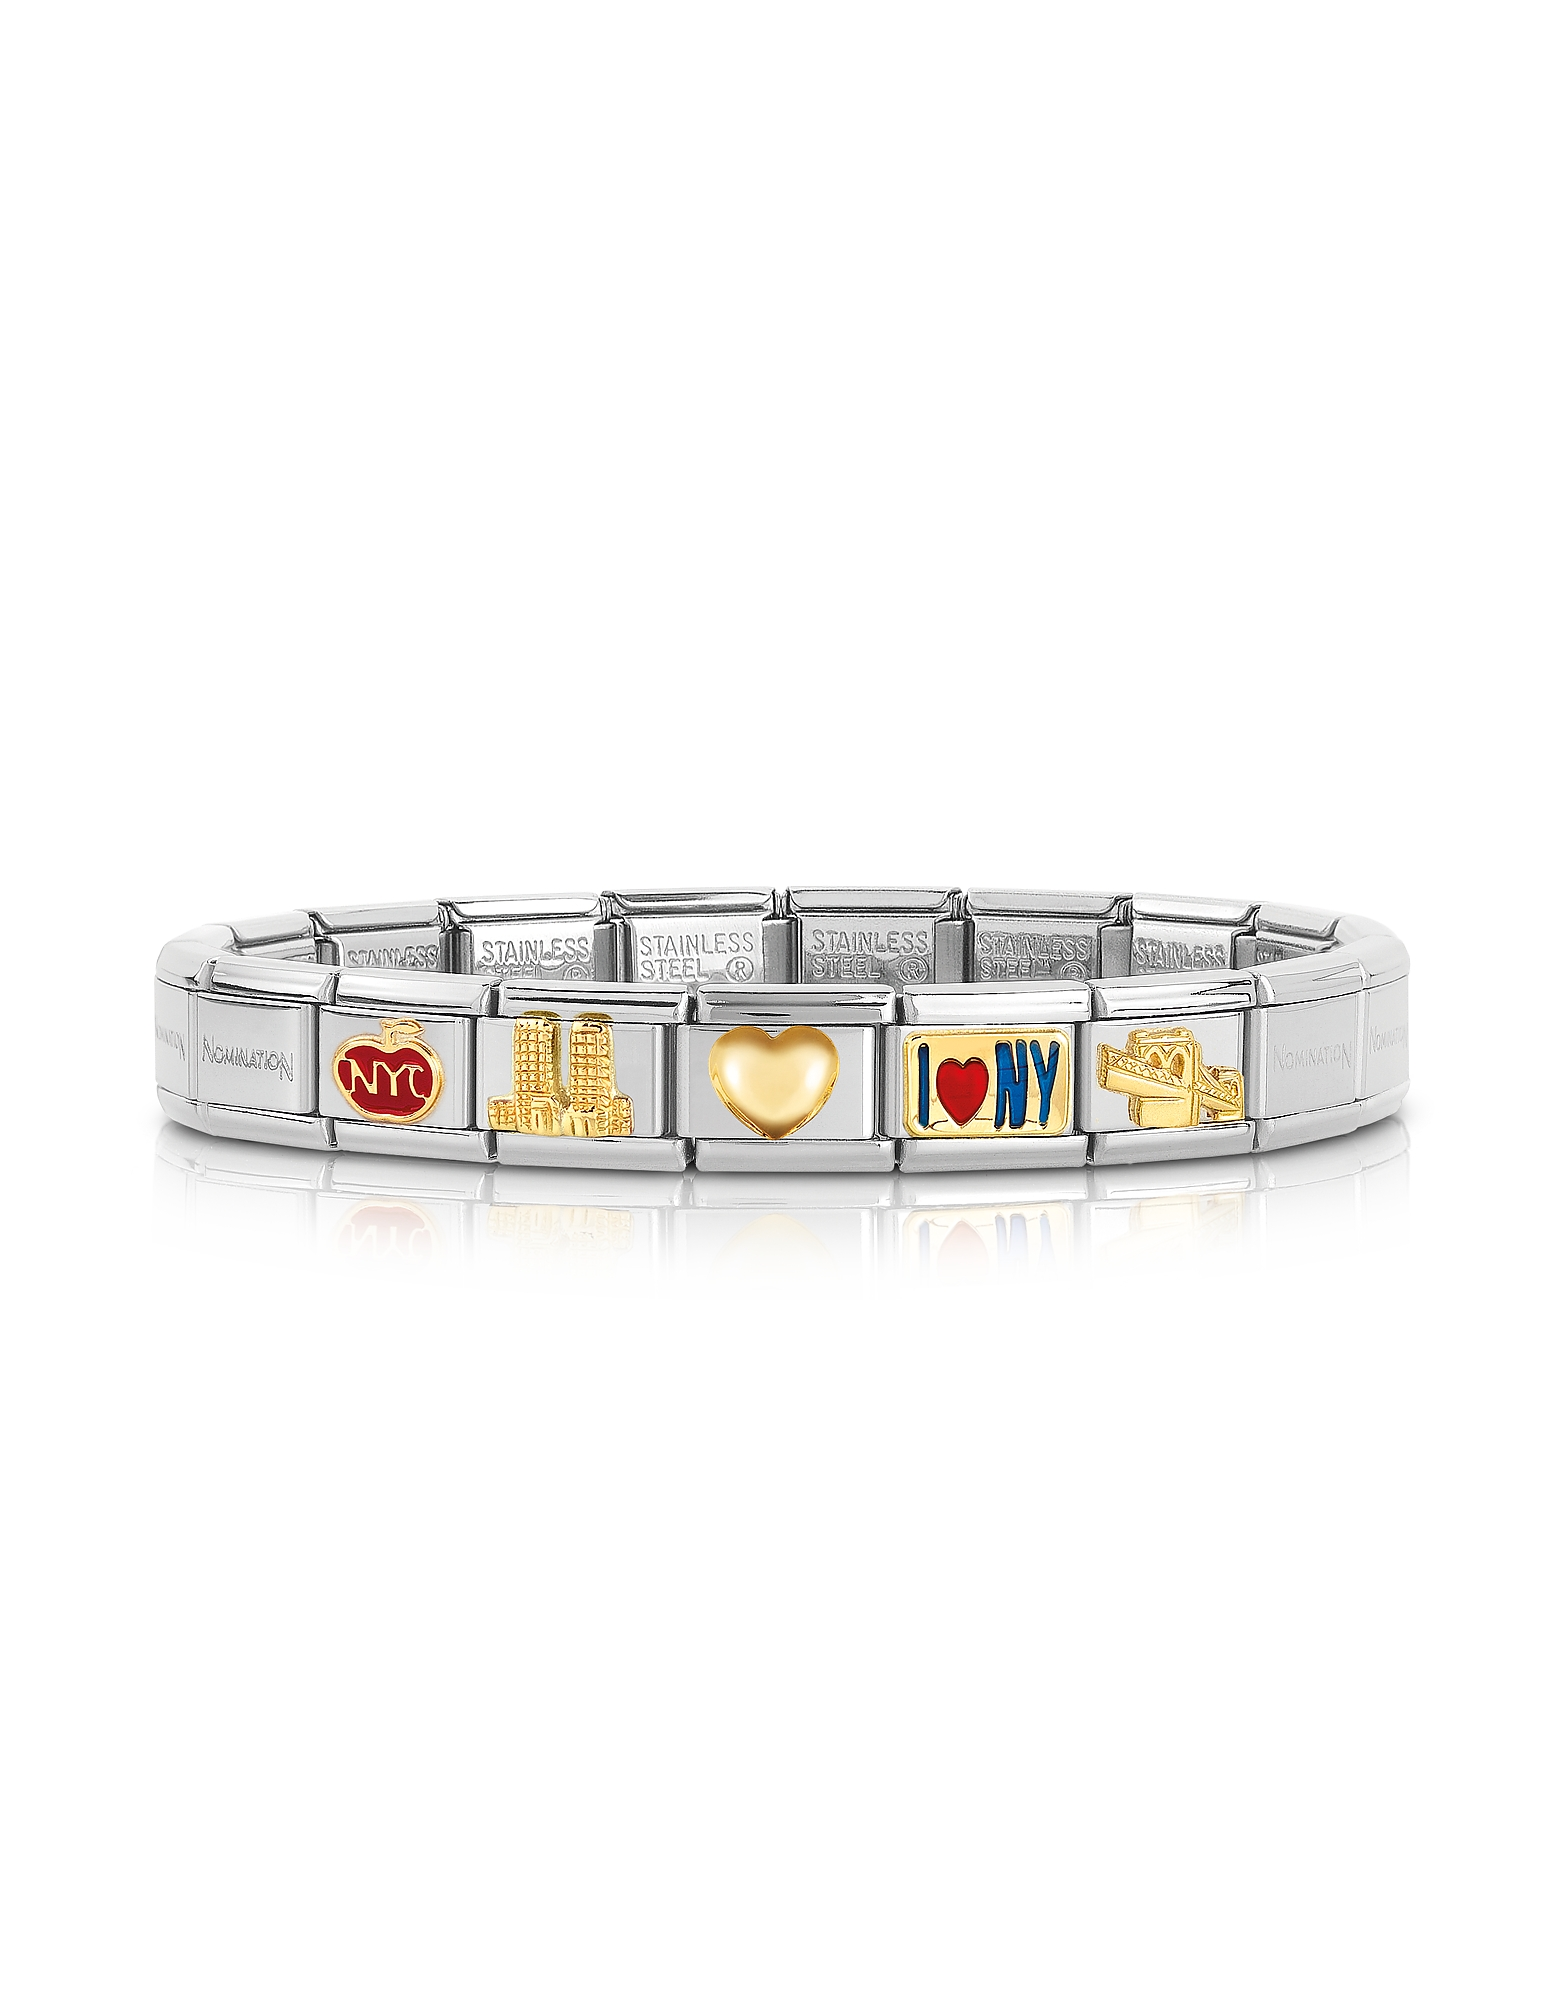 Nomination Bracelets, Classic I Love N.Y Golden Stainless Steel Bracelet